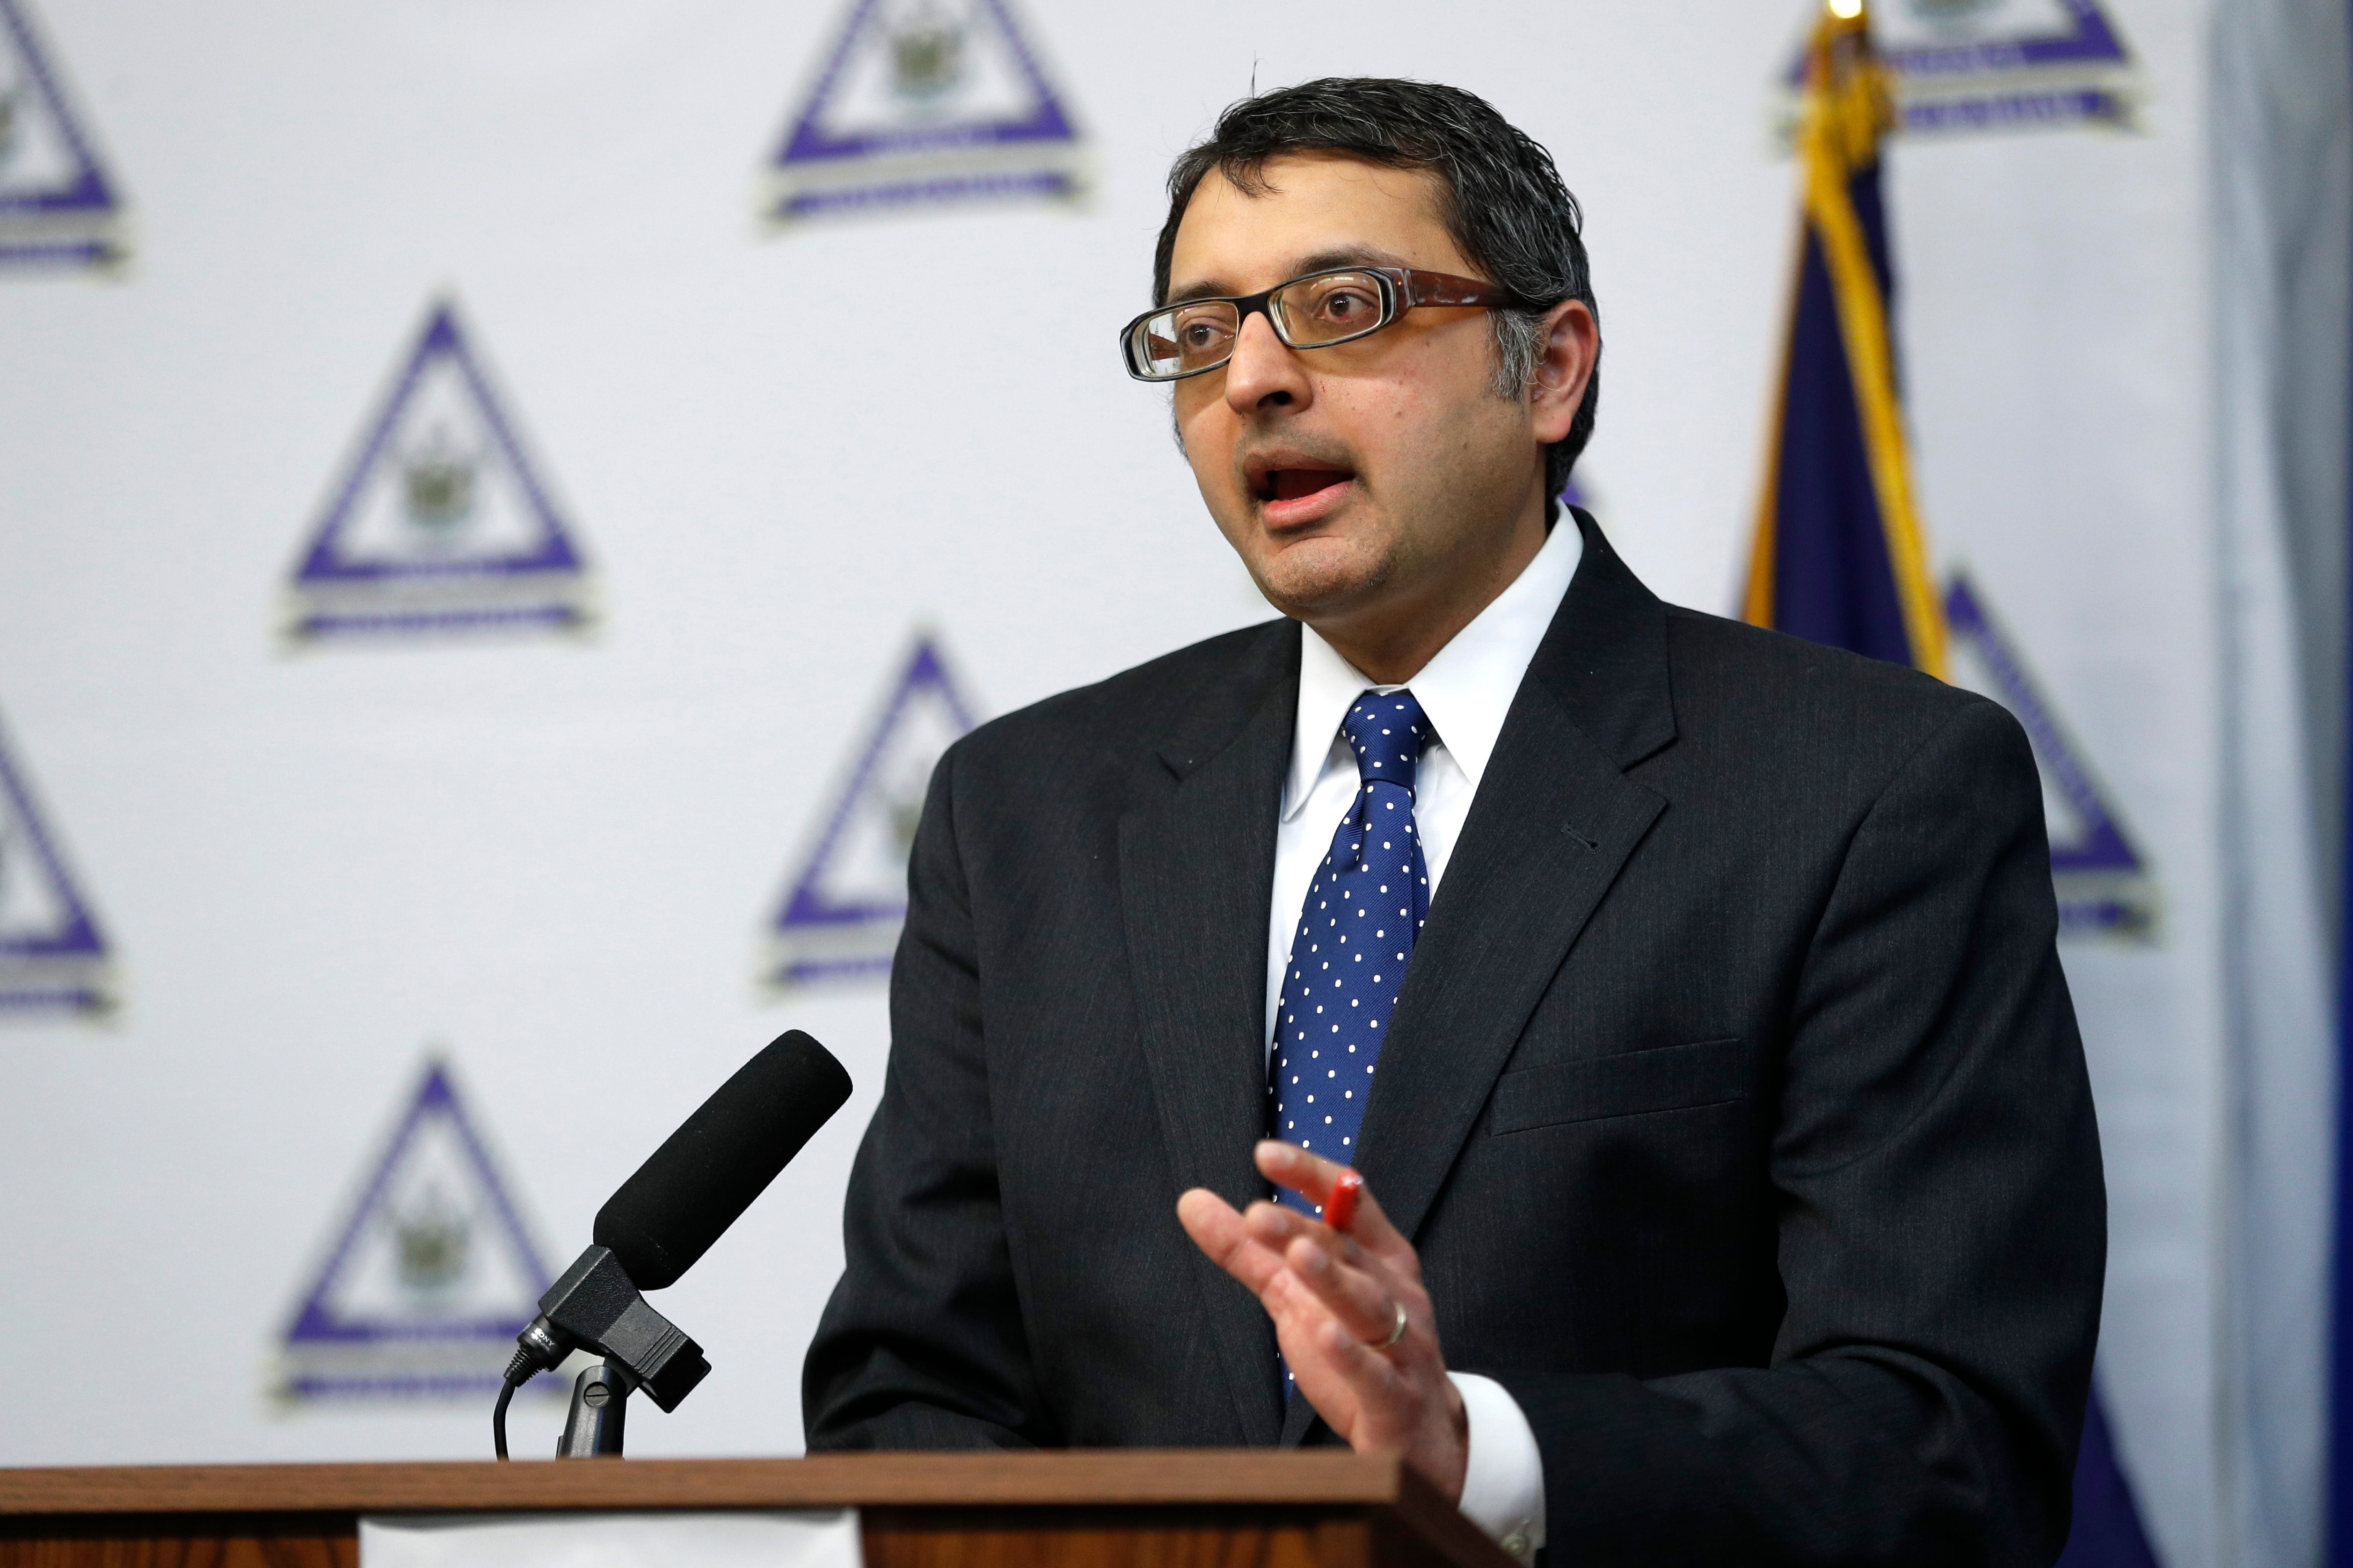 Dr. Nirav Shah, director of the Maine Center for Disease Control and Prevention, speaks April 28 at a news conference in Augusta, Maine.